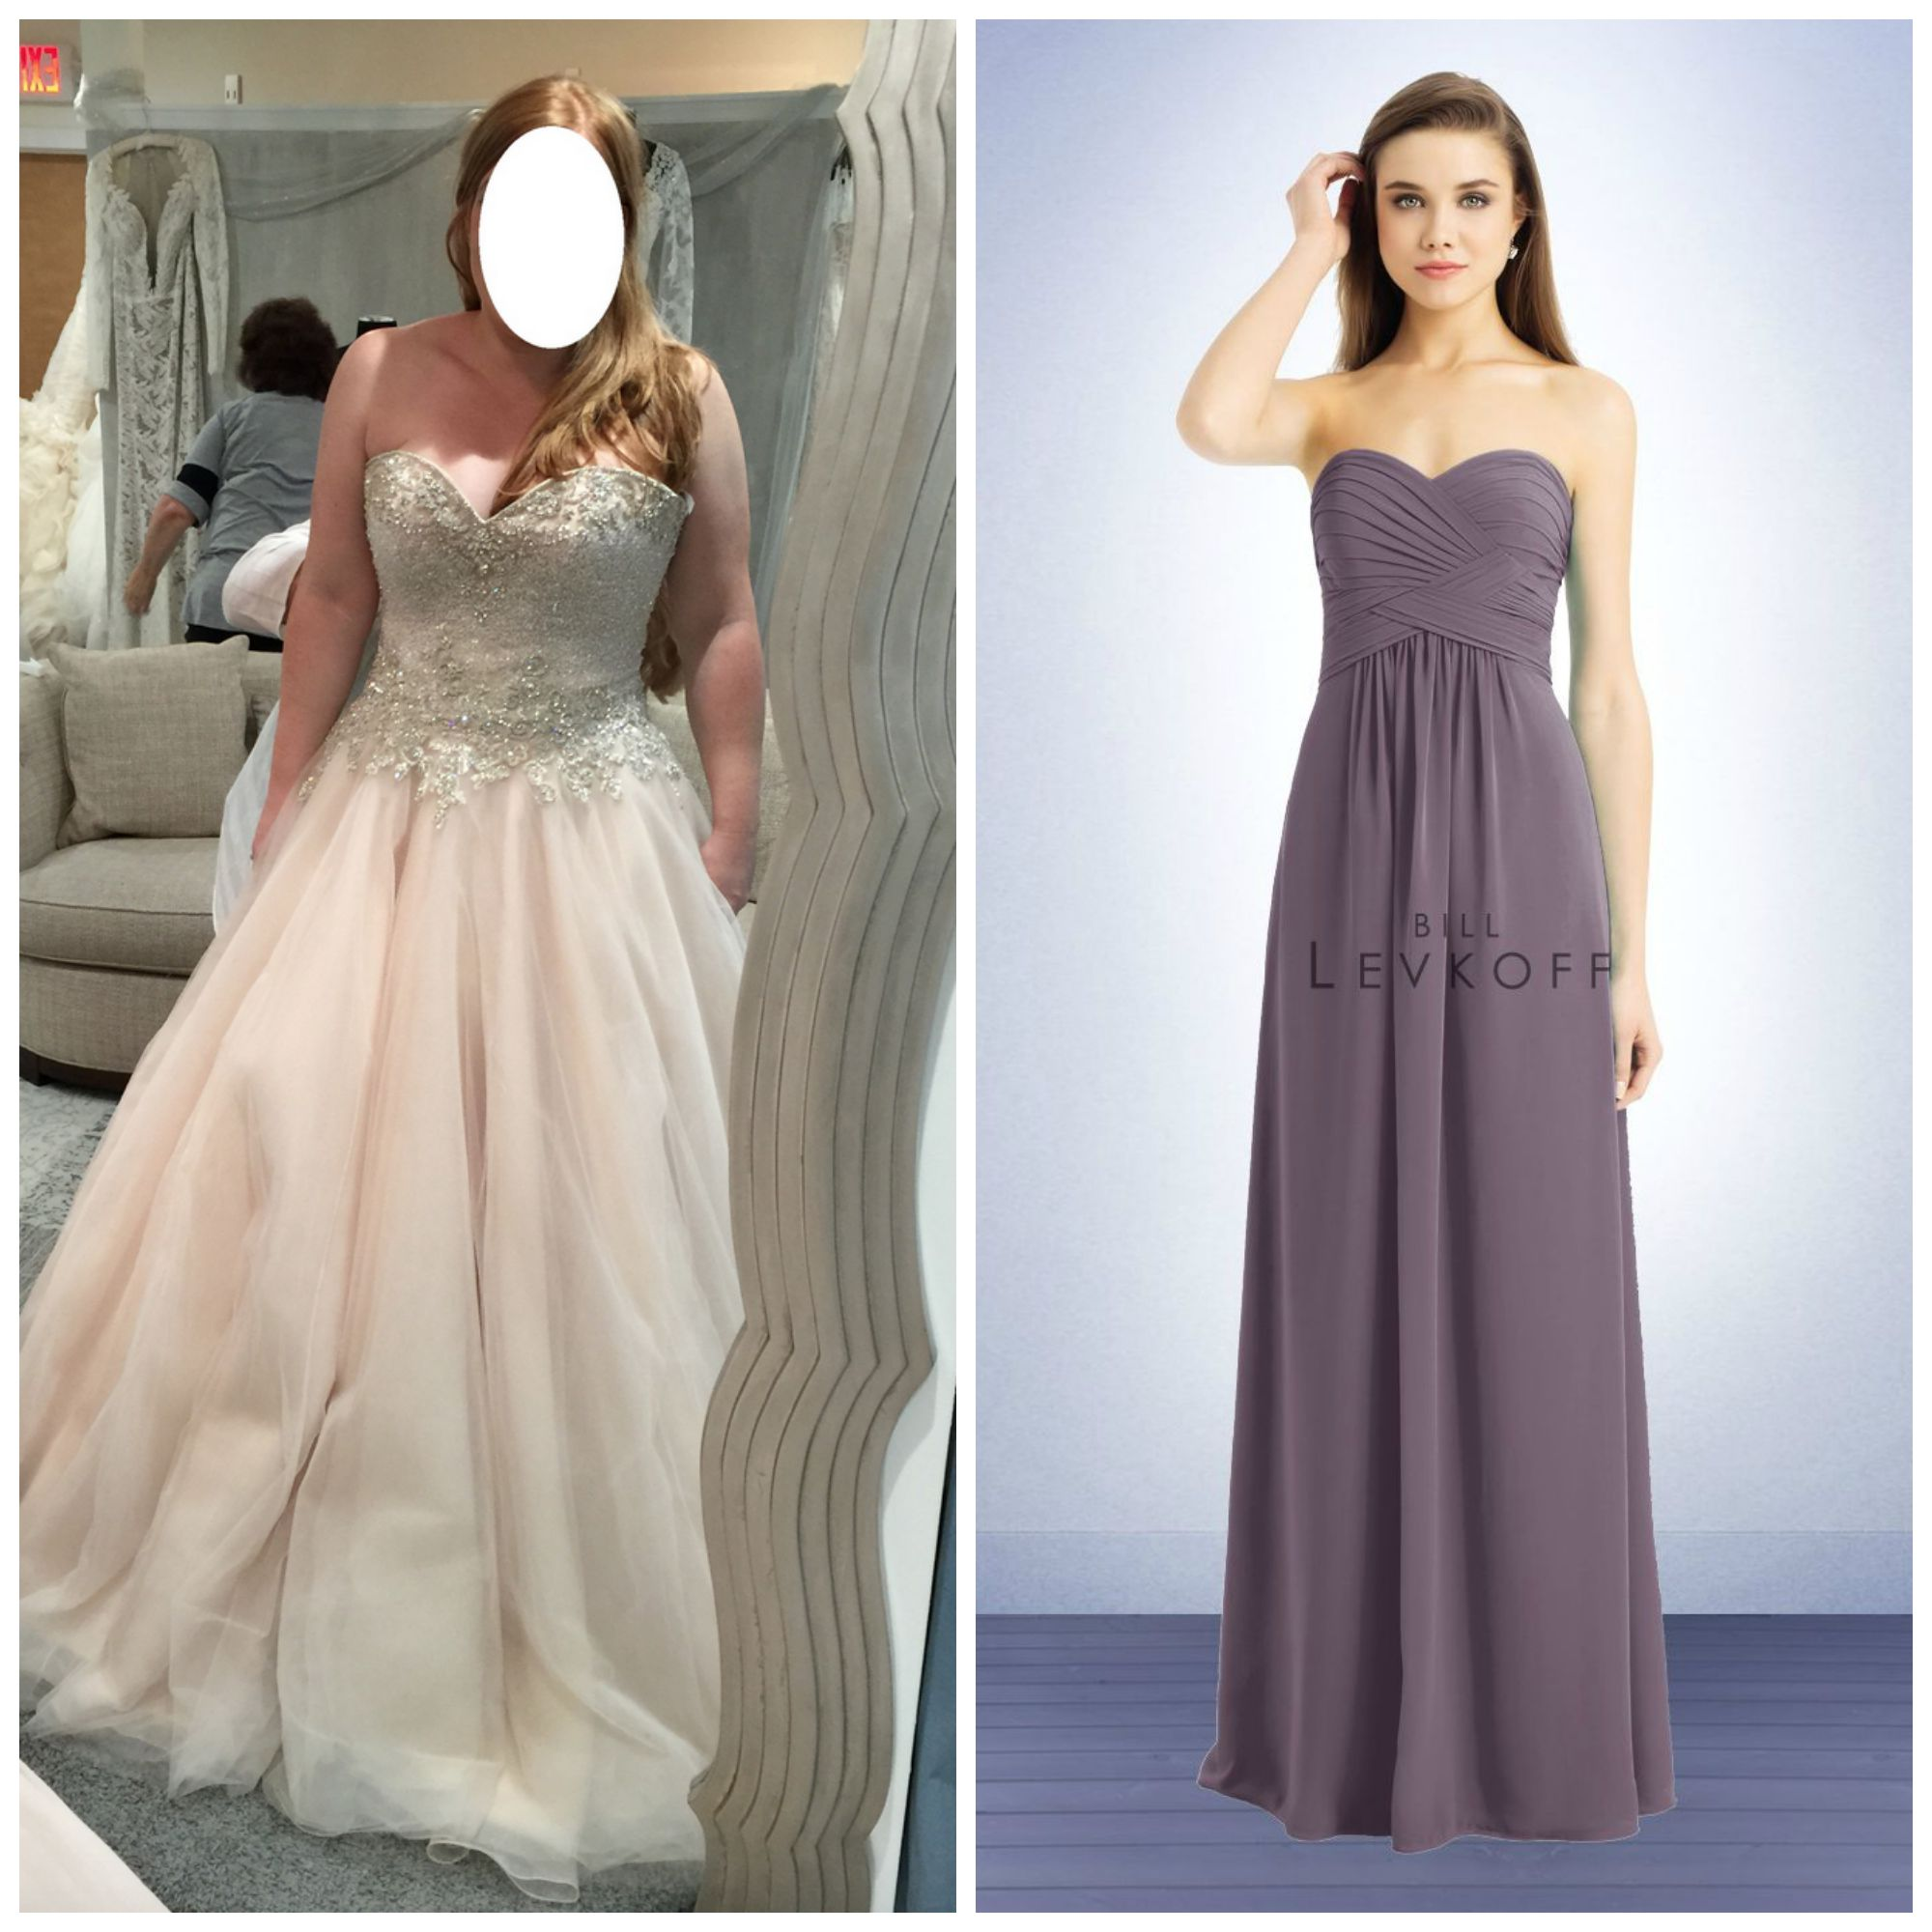 blush wedding dress what other colors to use lilac wedding dress http www billlevkoff com bridesmaid dresses